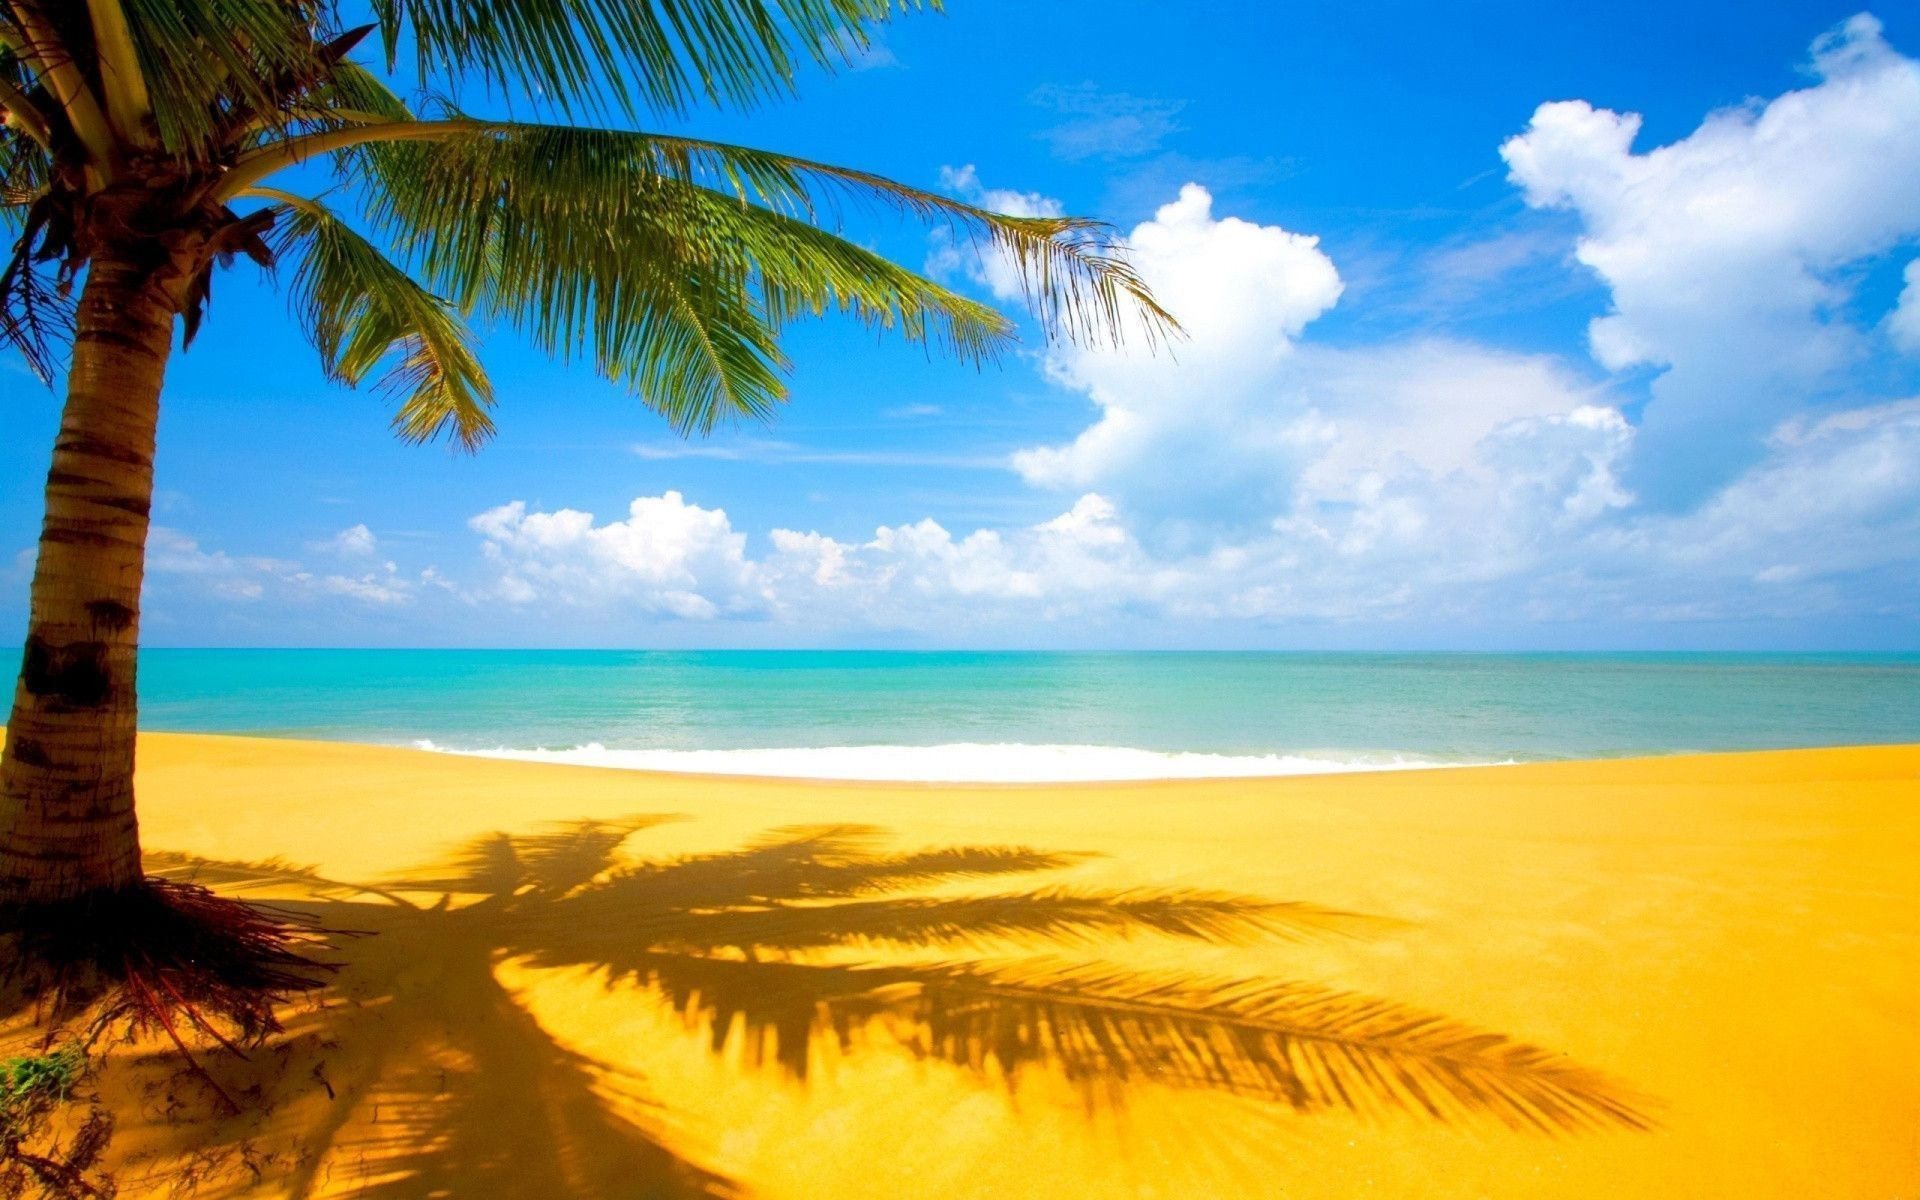 Hawaiian Background 1 Download Free Stunning HD Wallpapers For